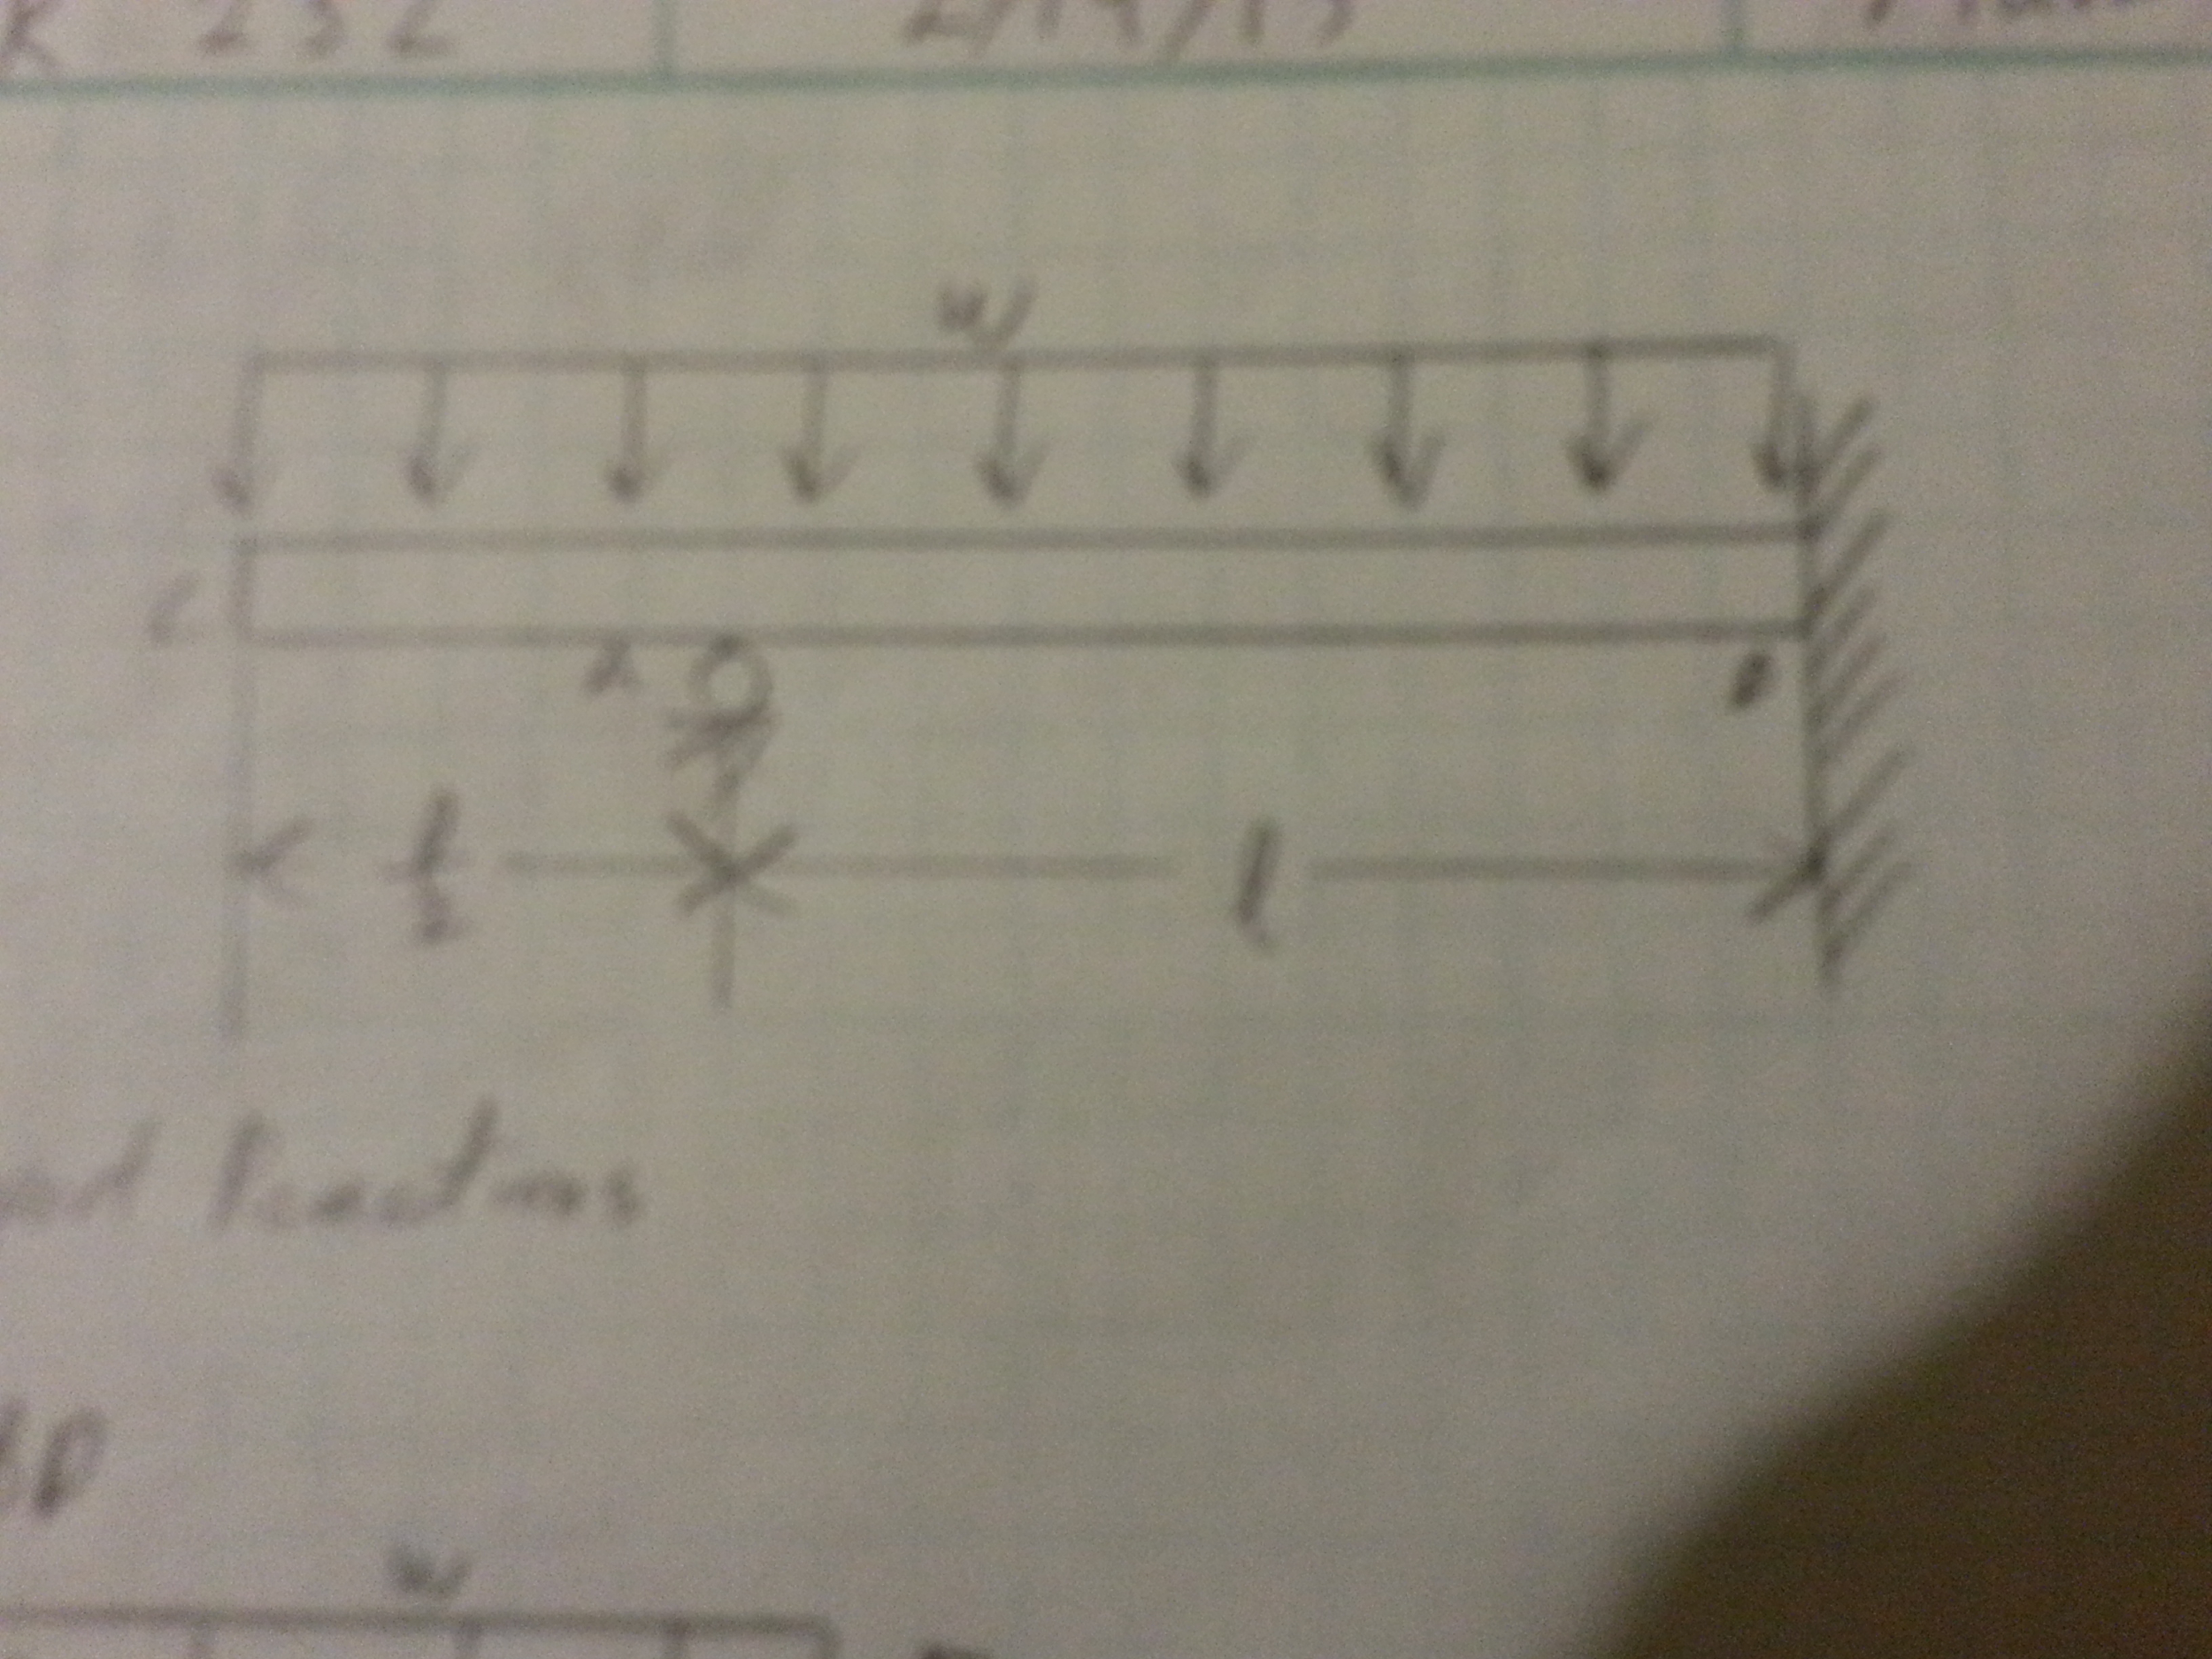 What would the deflection in this beam look like?